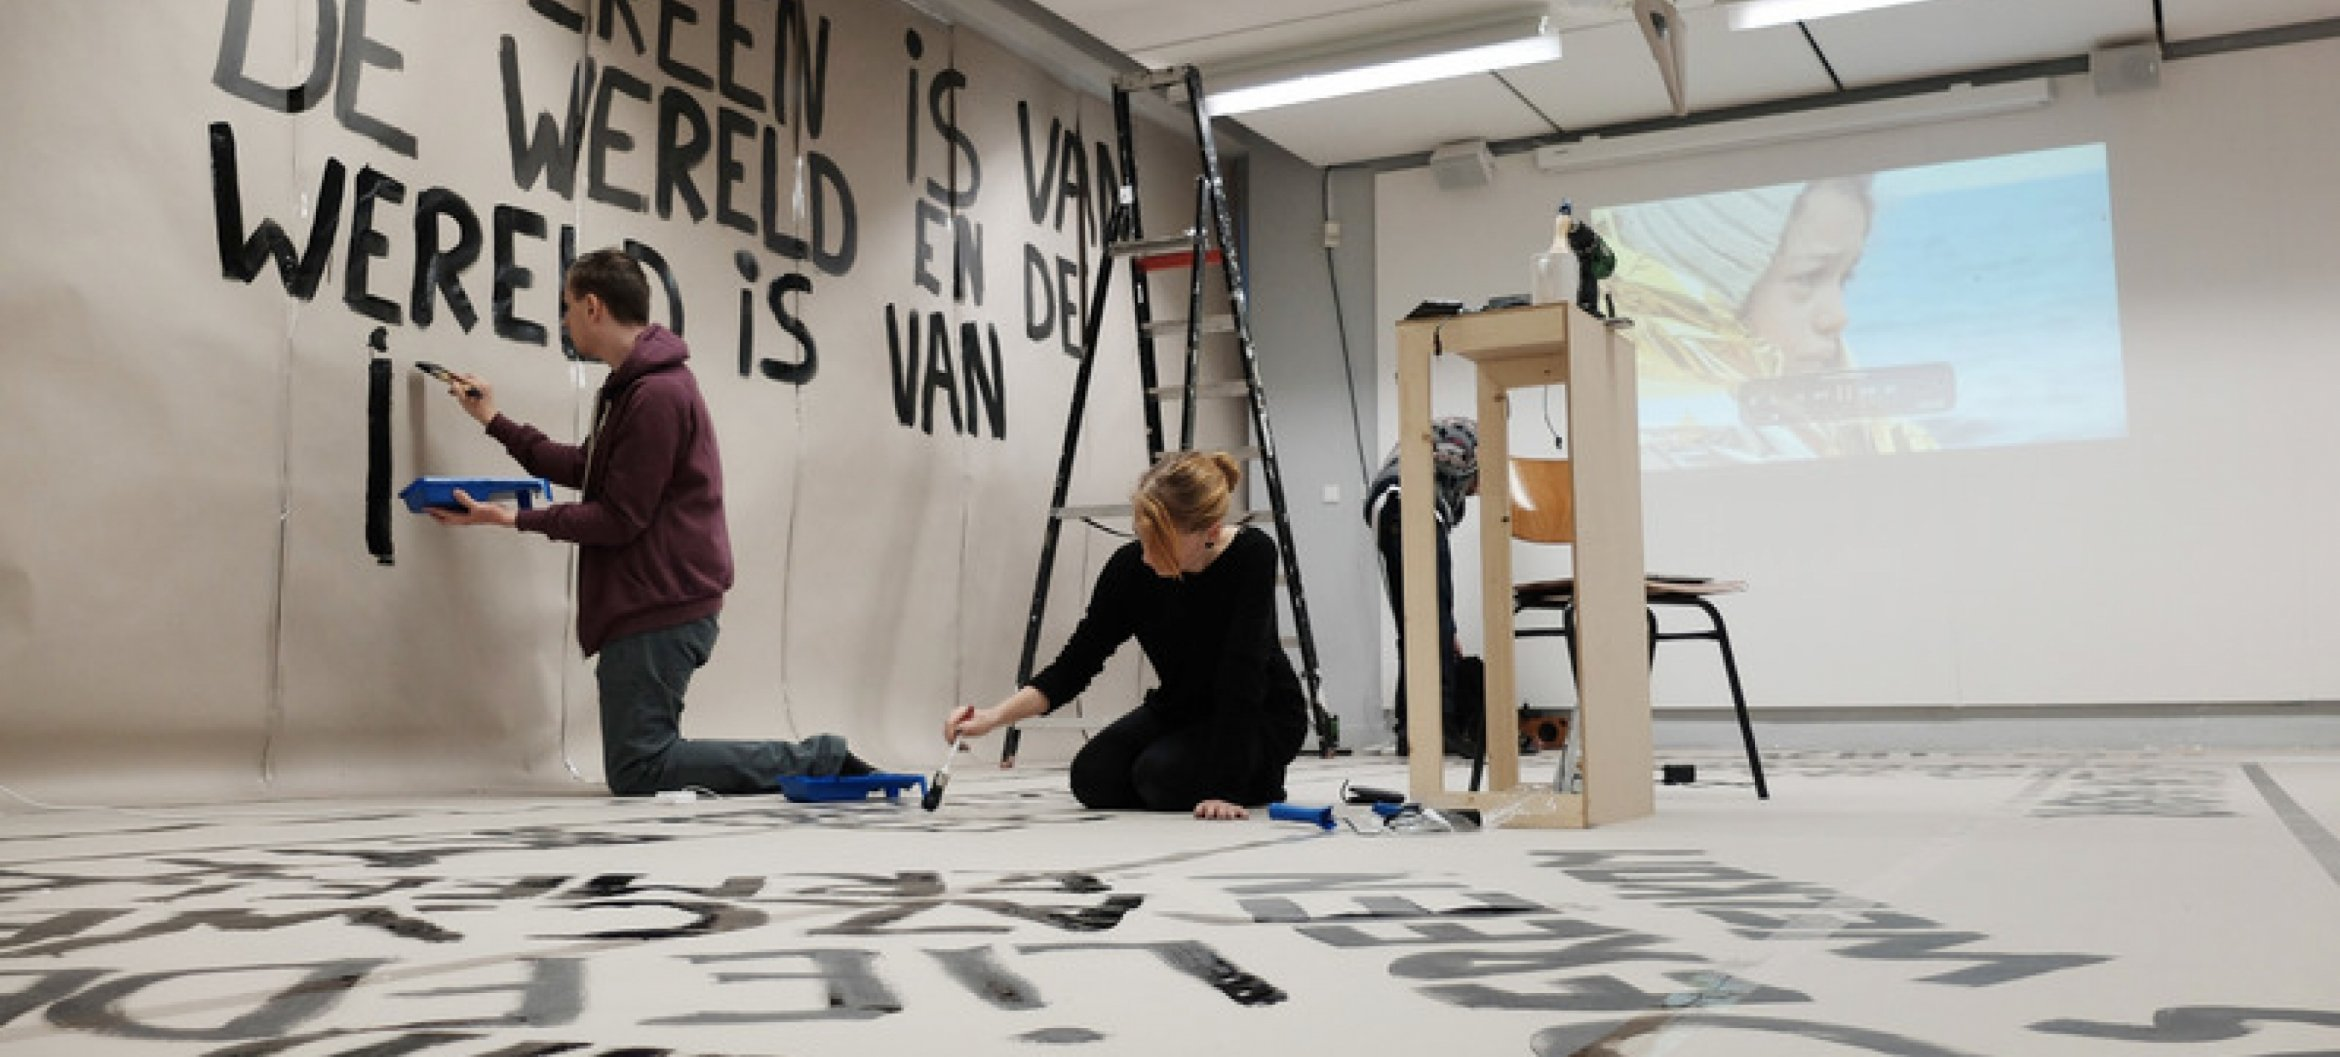 Project Winterlab at ArtEZ in Zwolle